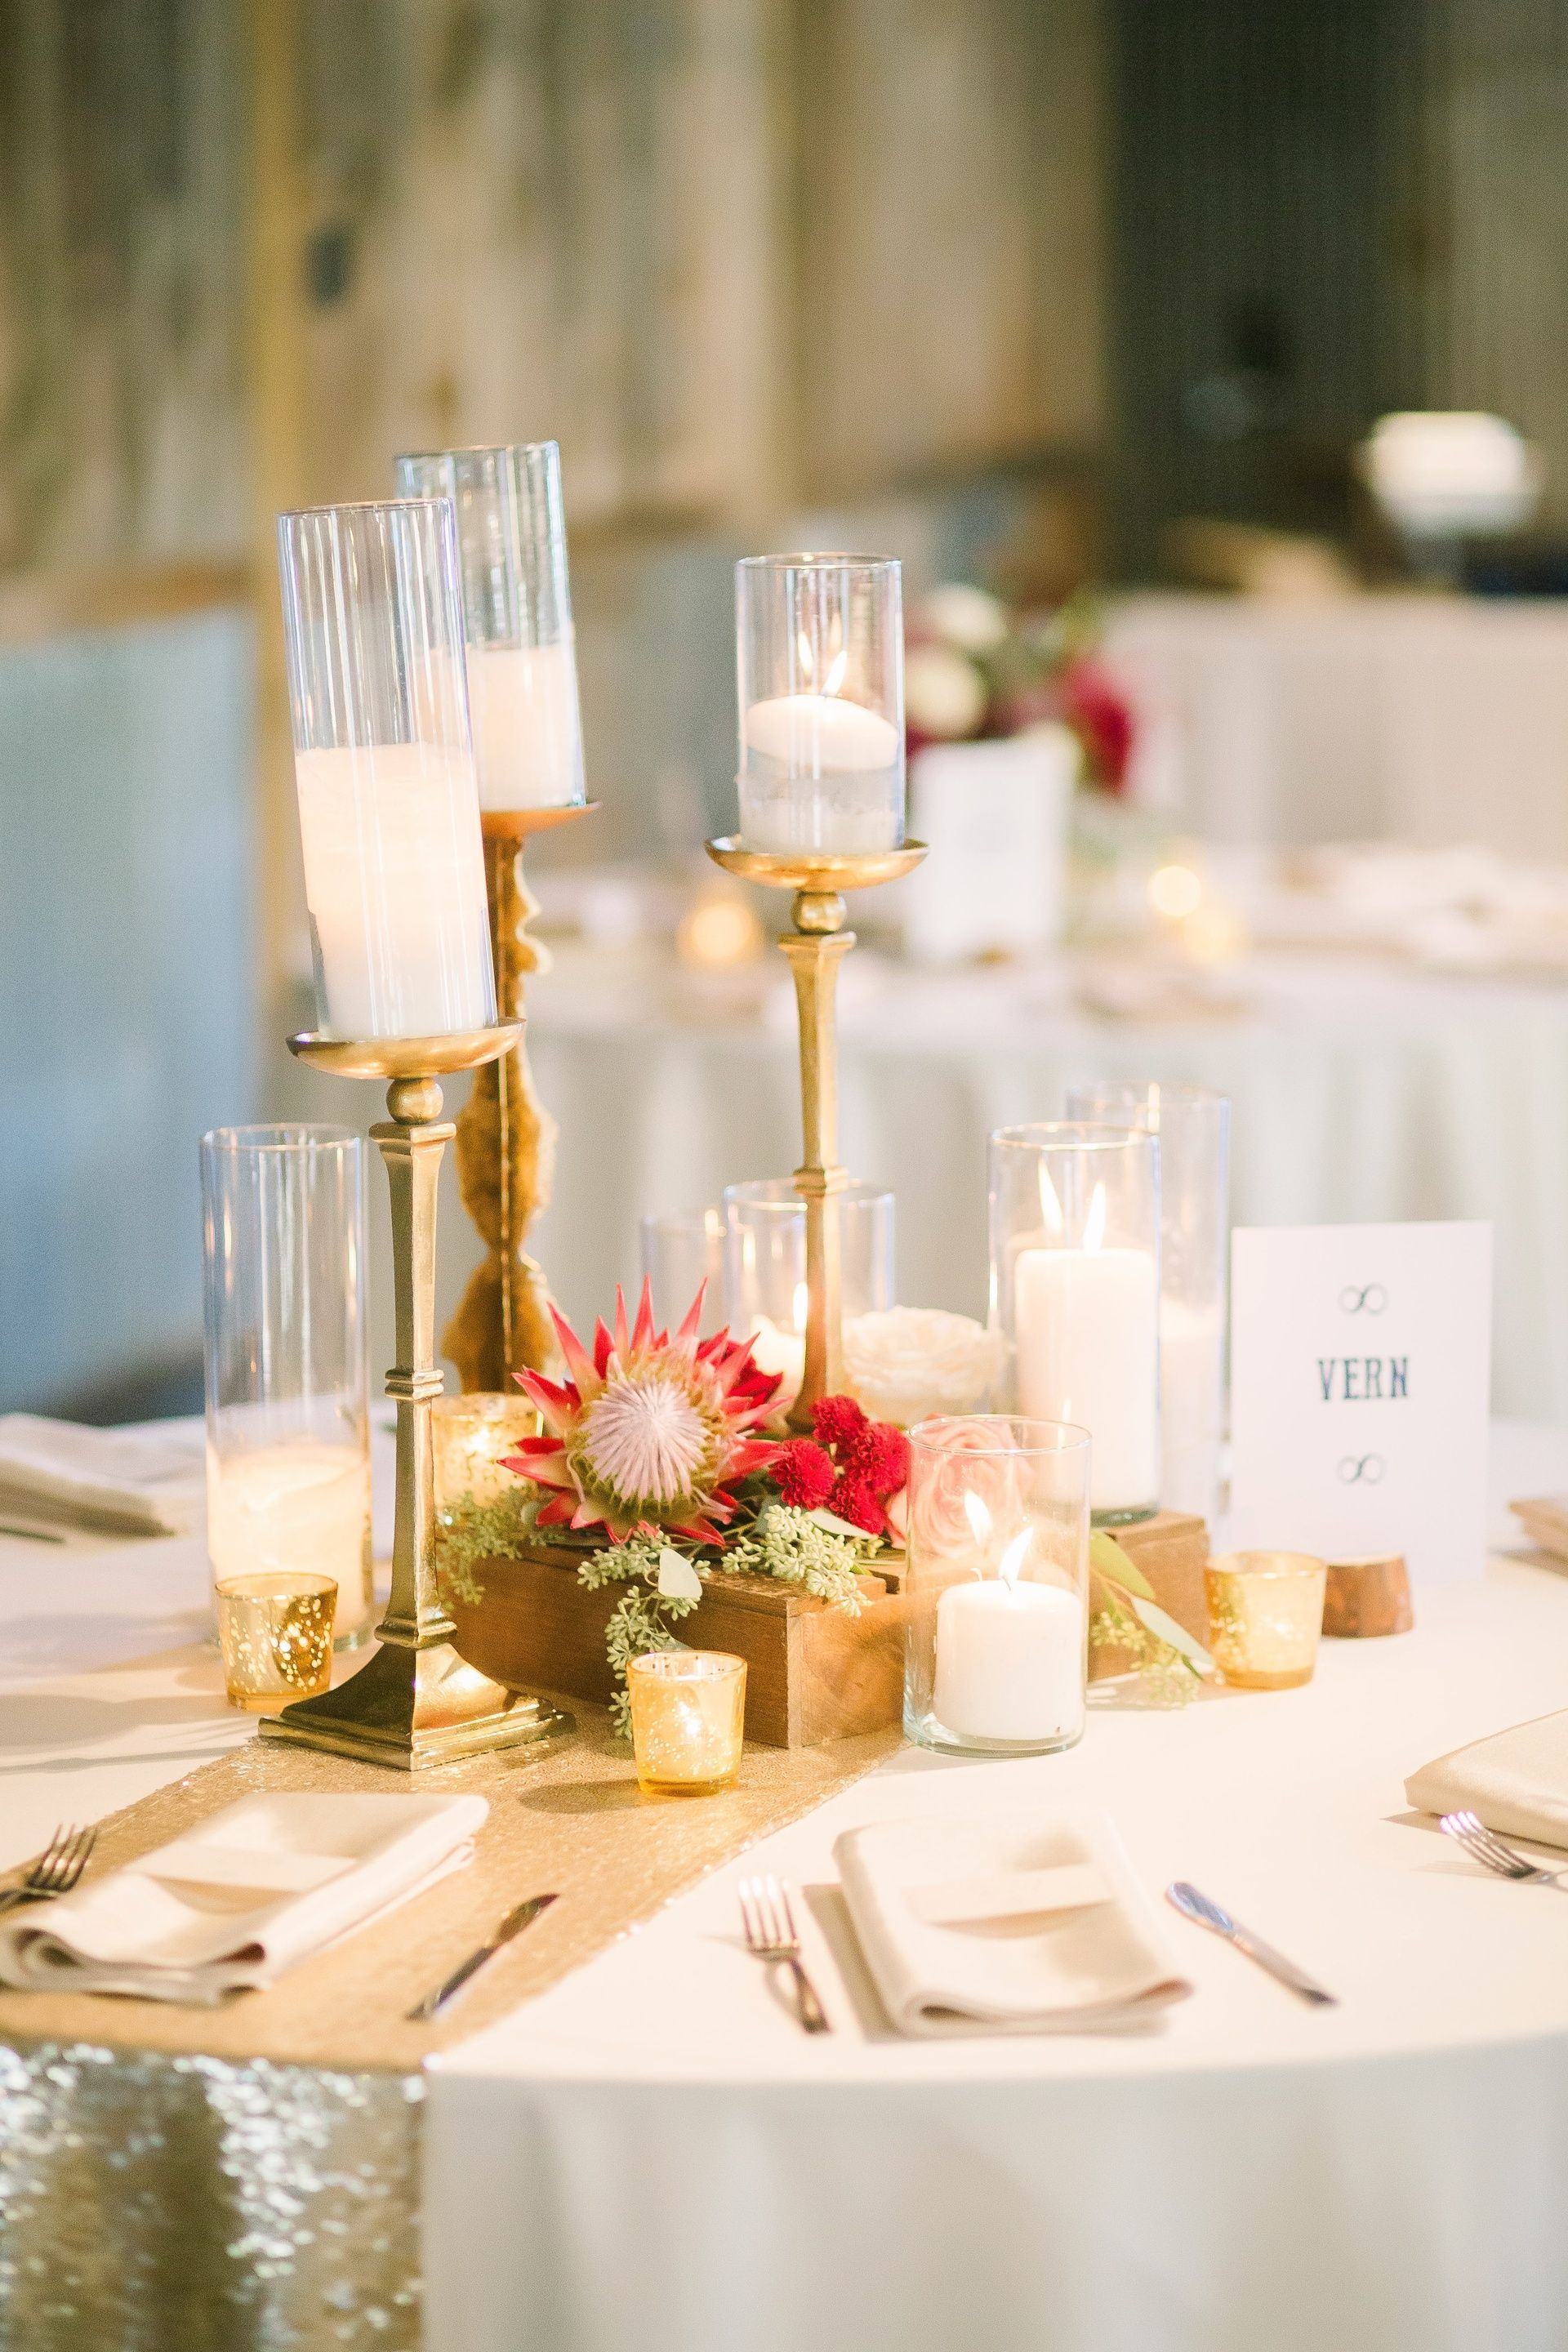 Glam Indoor Wedding Reception Table Decor Gold Candle Holders Gold S Sequin Table Runner Wedding Wedding Reception Table Decorations Gold Sequin Table Runner